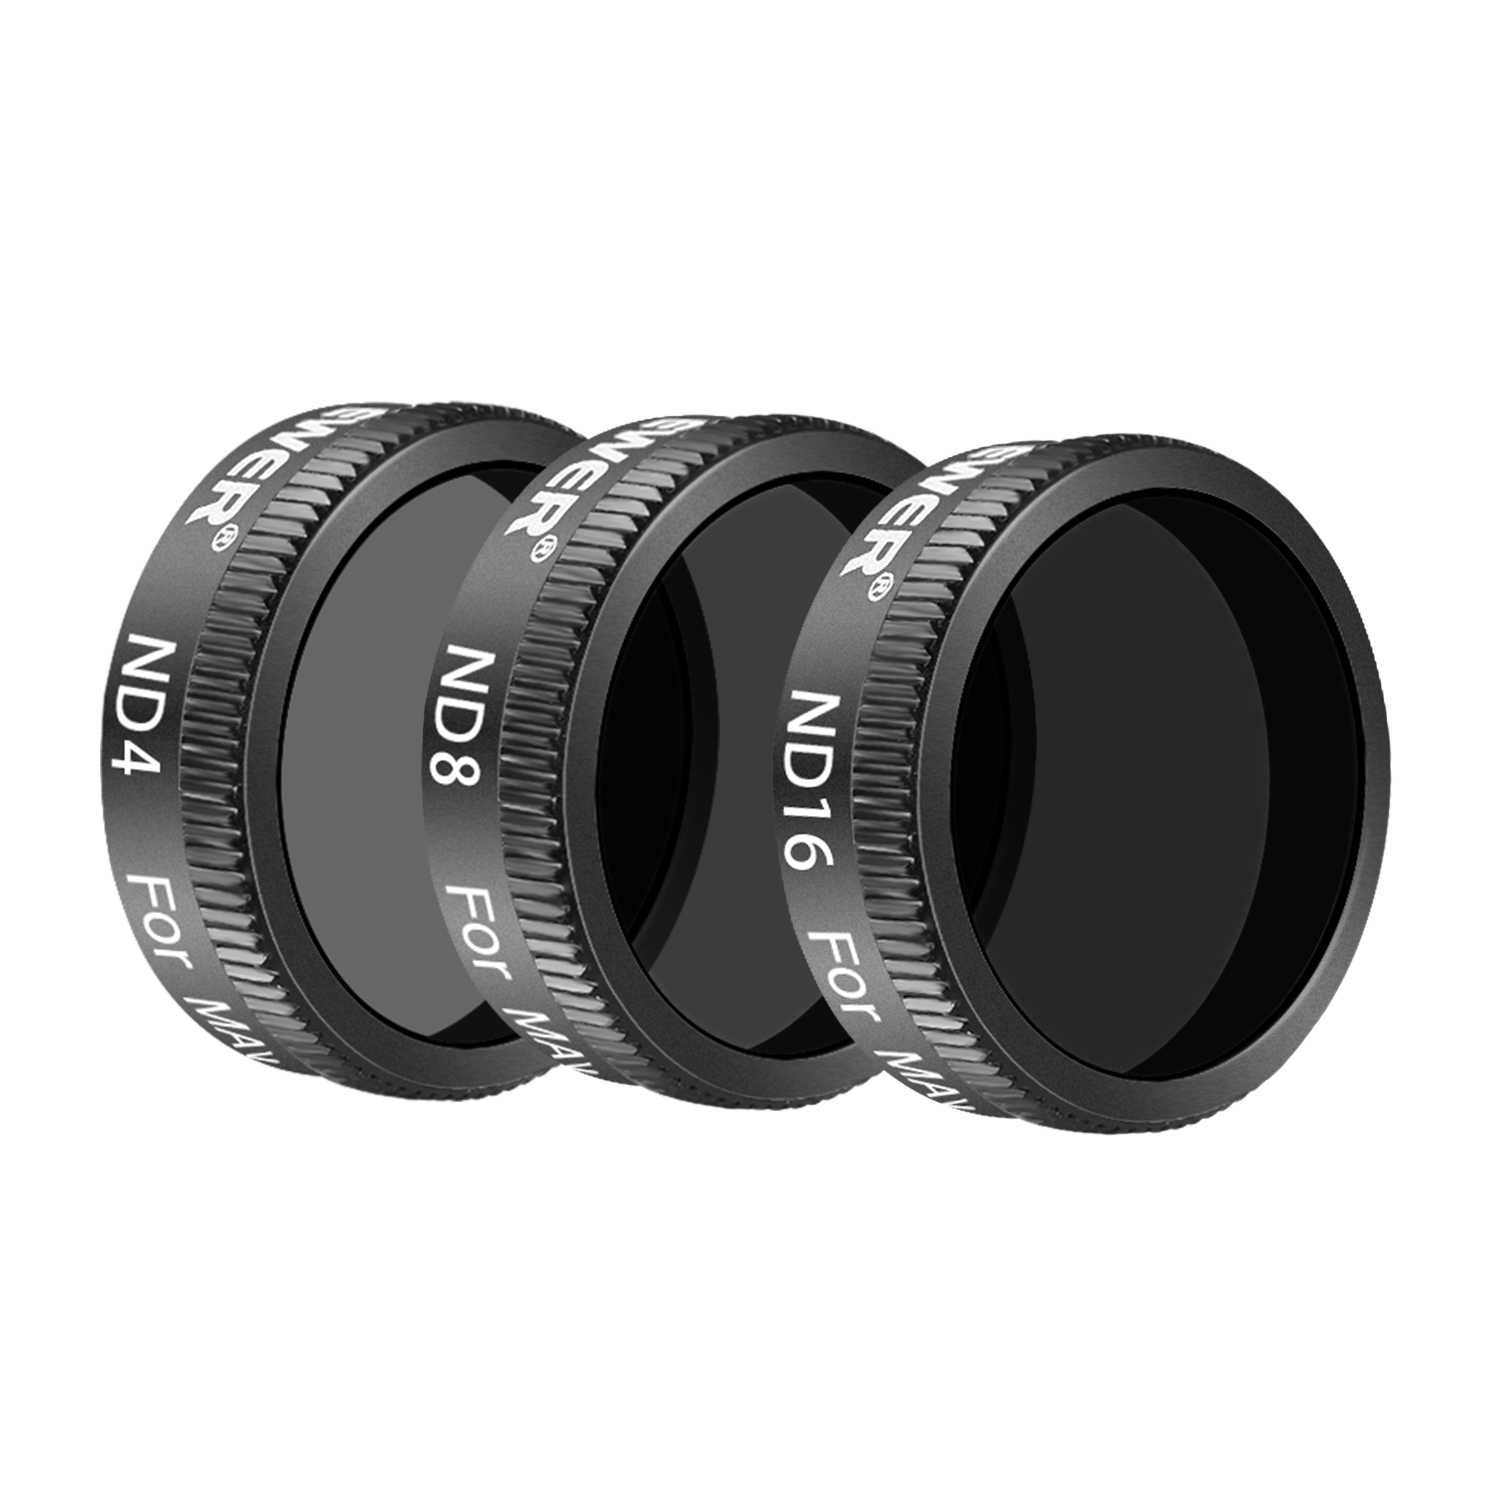 6 Pieces CPL ND4//PL Neewer DJI Mavic Air Filter Kit ND8//PL Black Made of Optical Glass and Aluminum Alloy Frame ND16//PL and ND32//PL Filter UV